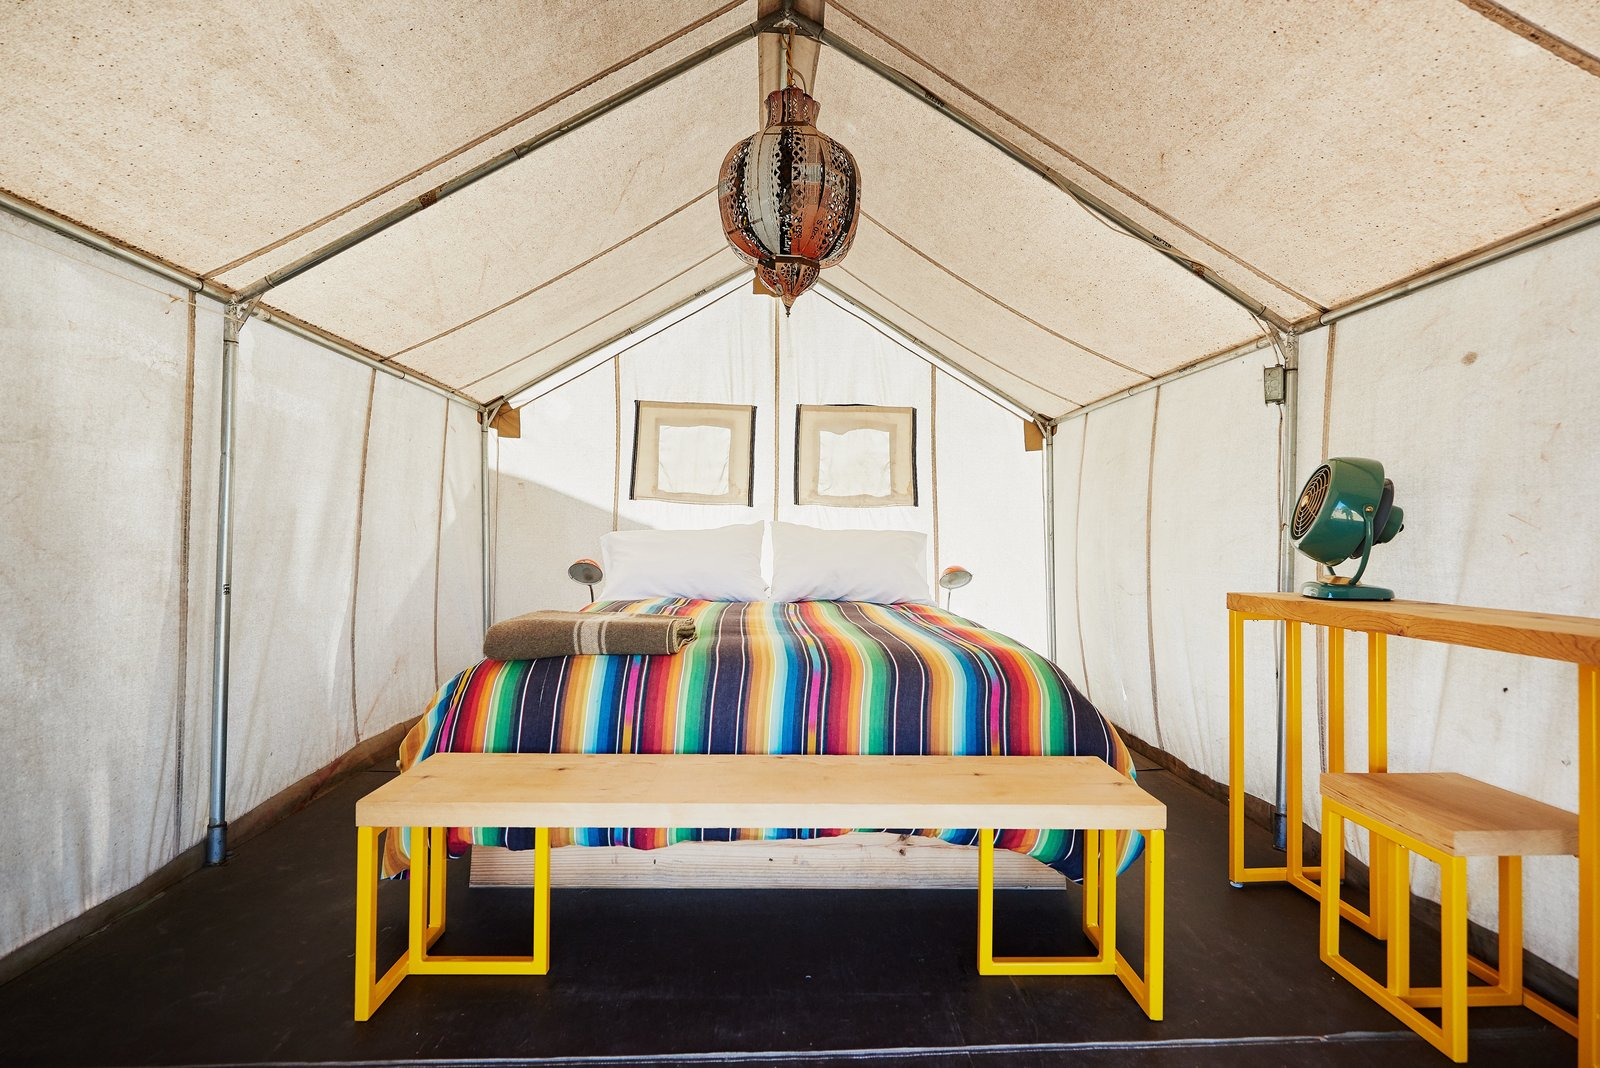 Bedroom, Table Lighting, Ceiling Lighting, Bench, and Bed Here is a look at one of the 21 safari tents. Each one is 120 square feet and comes with wooden floors and durable canvas walls/doors.    Photo 9 of 12 in Let Your Creativity Soar at This Eclectic Hotel With Tents, Tepees, Yurts, and Trailers